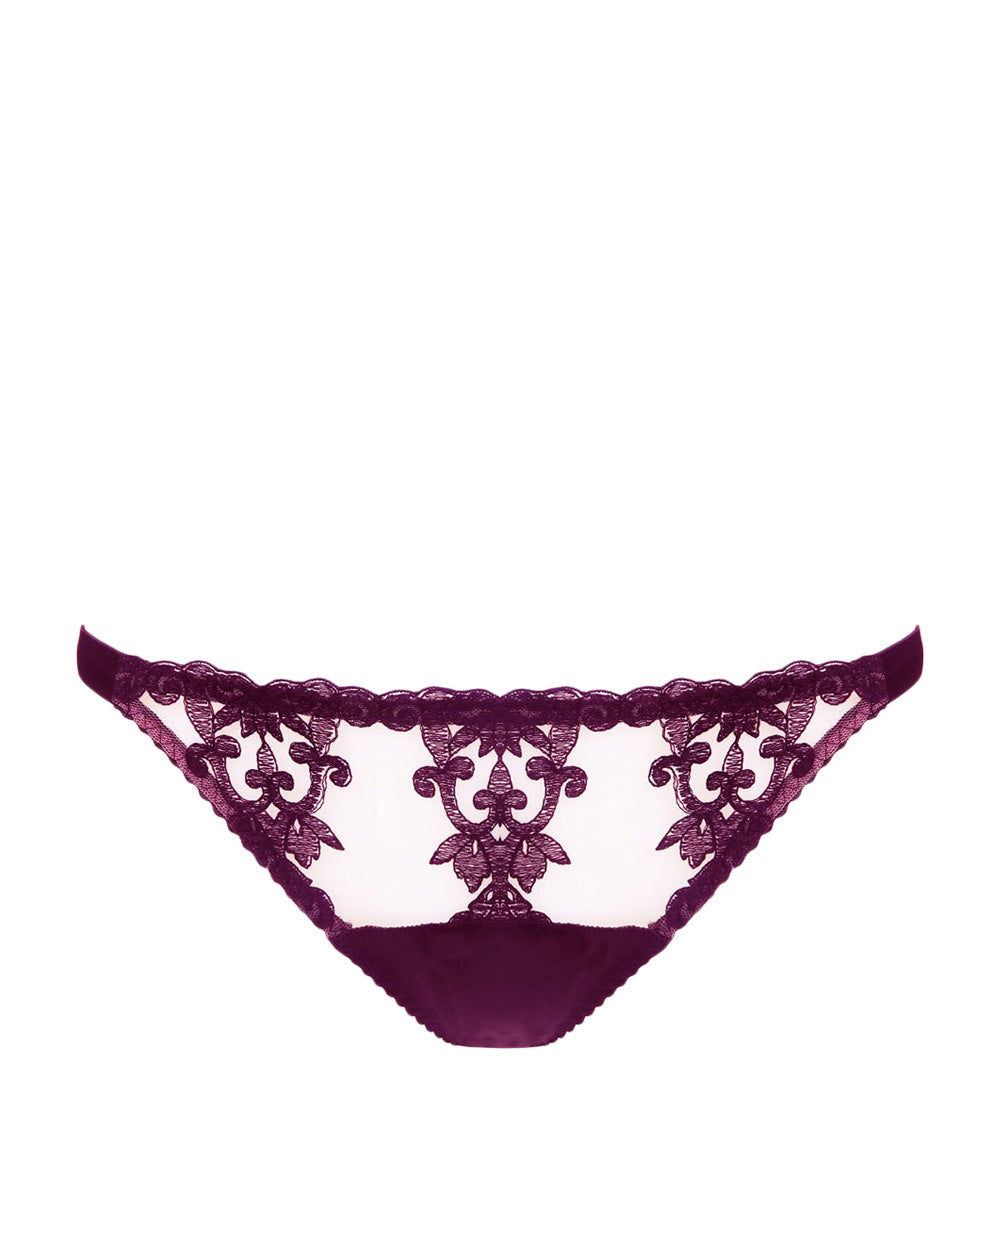 Bordeaux Ouvert Silk Brief